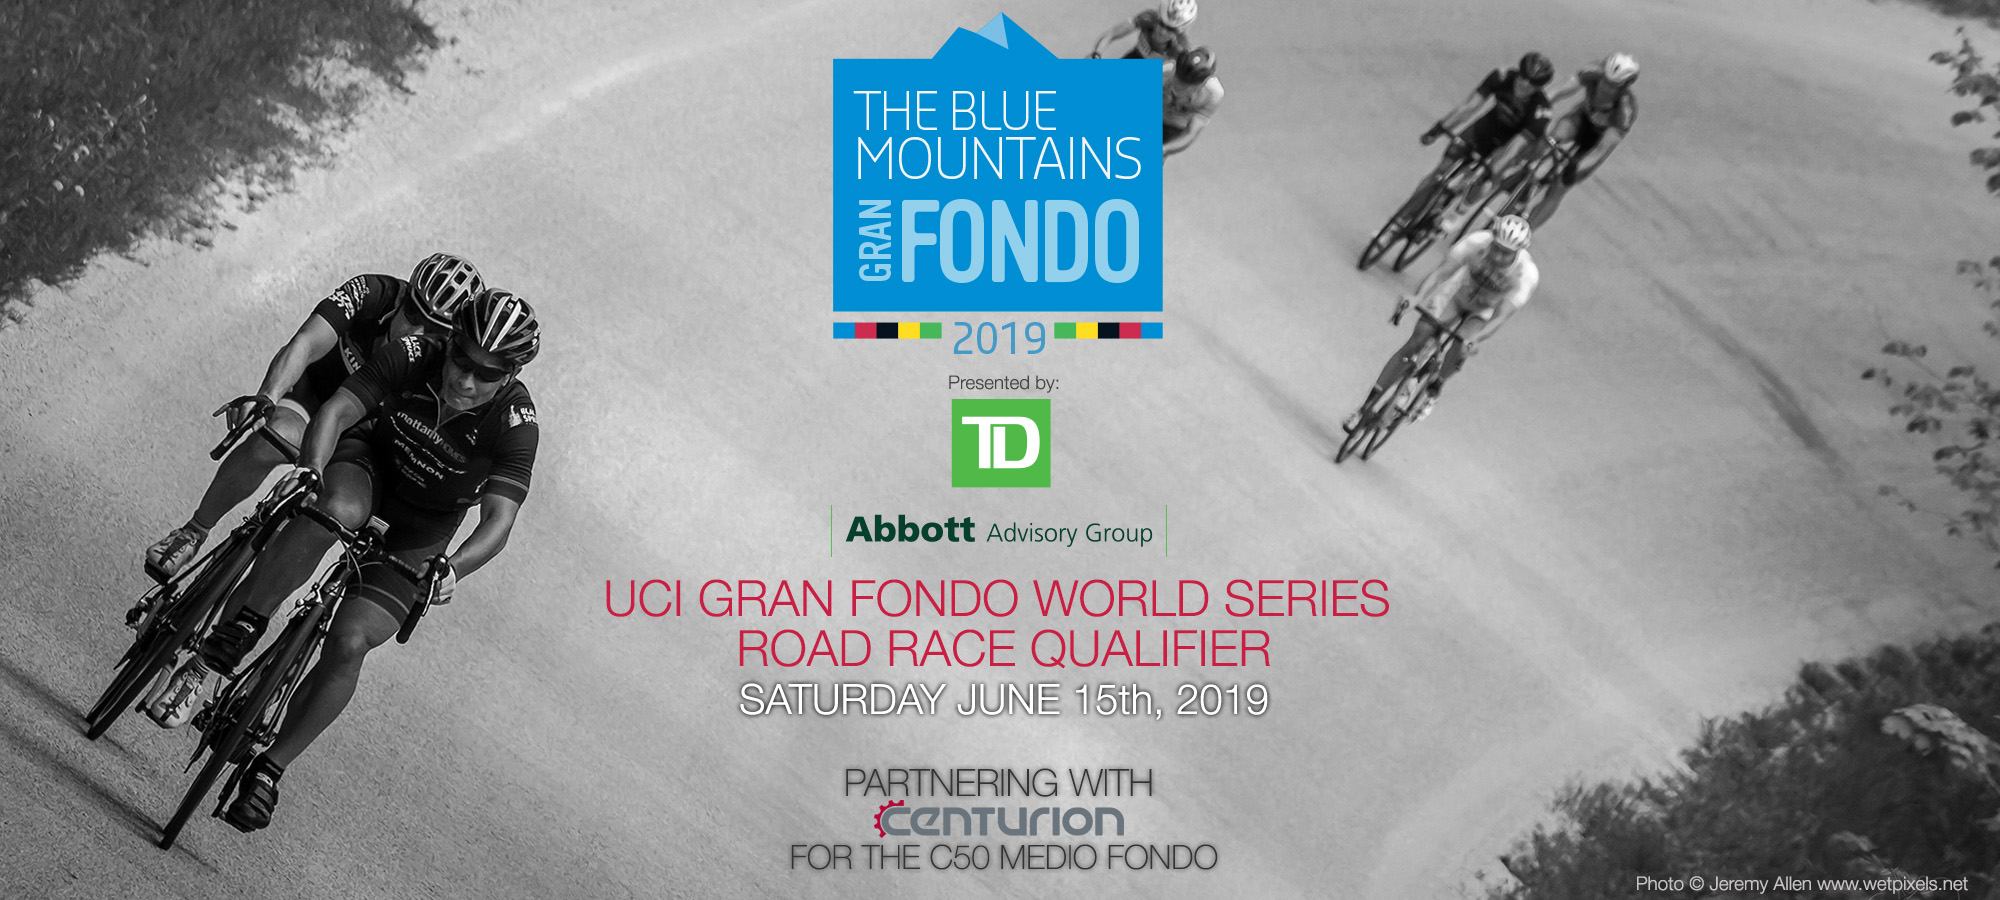 THE BLUE MOUNTAINS GRAN FONDO